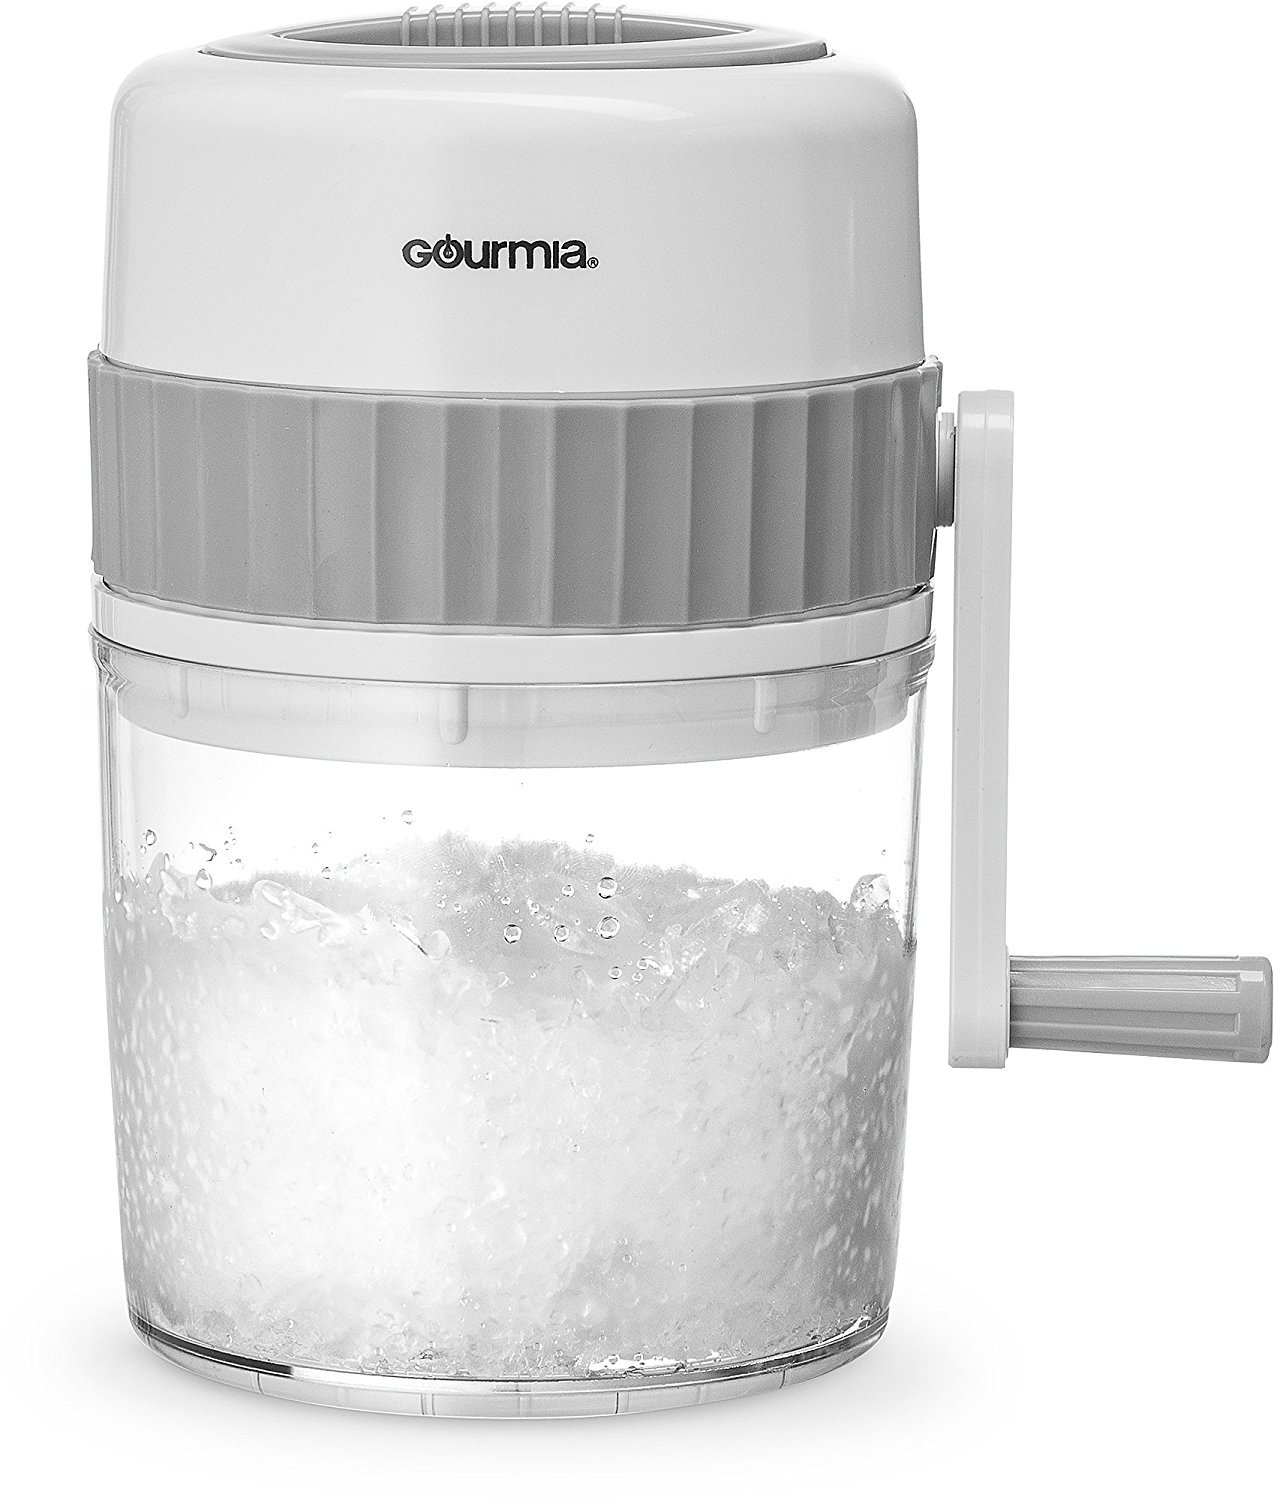 Gourmia GIC9635 Ice Shaver - Manual Hand Crank Operated Ice Breaker with Stainless Steel Blades for Fast Crushing - BPA Free GIC9630